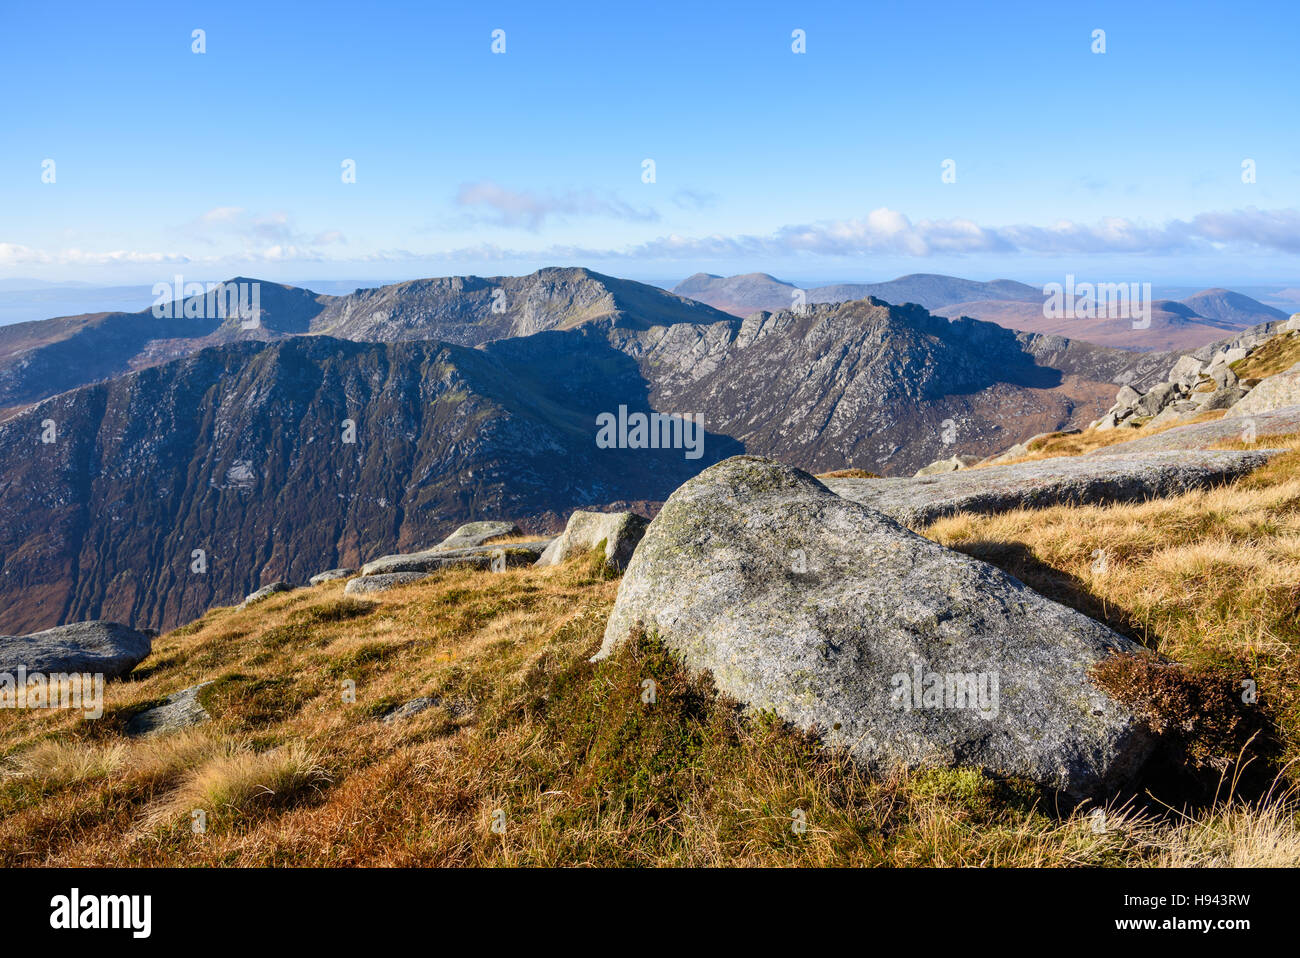 View from the top of Goatfell, Isle of Arran, North Ayrshire, Scotland - Stock Image